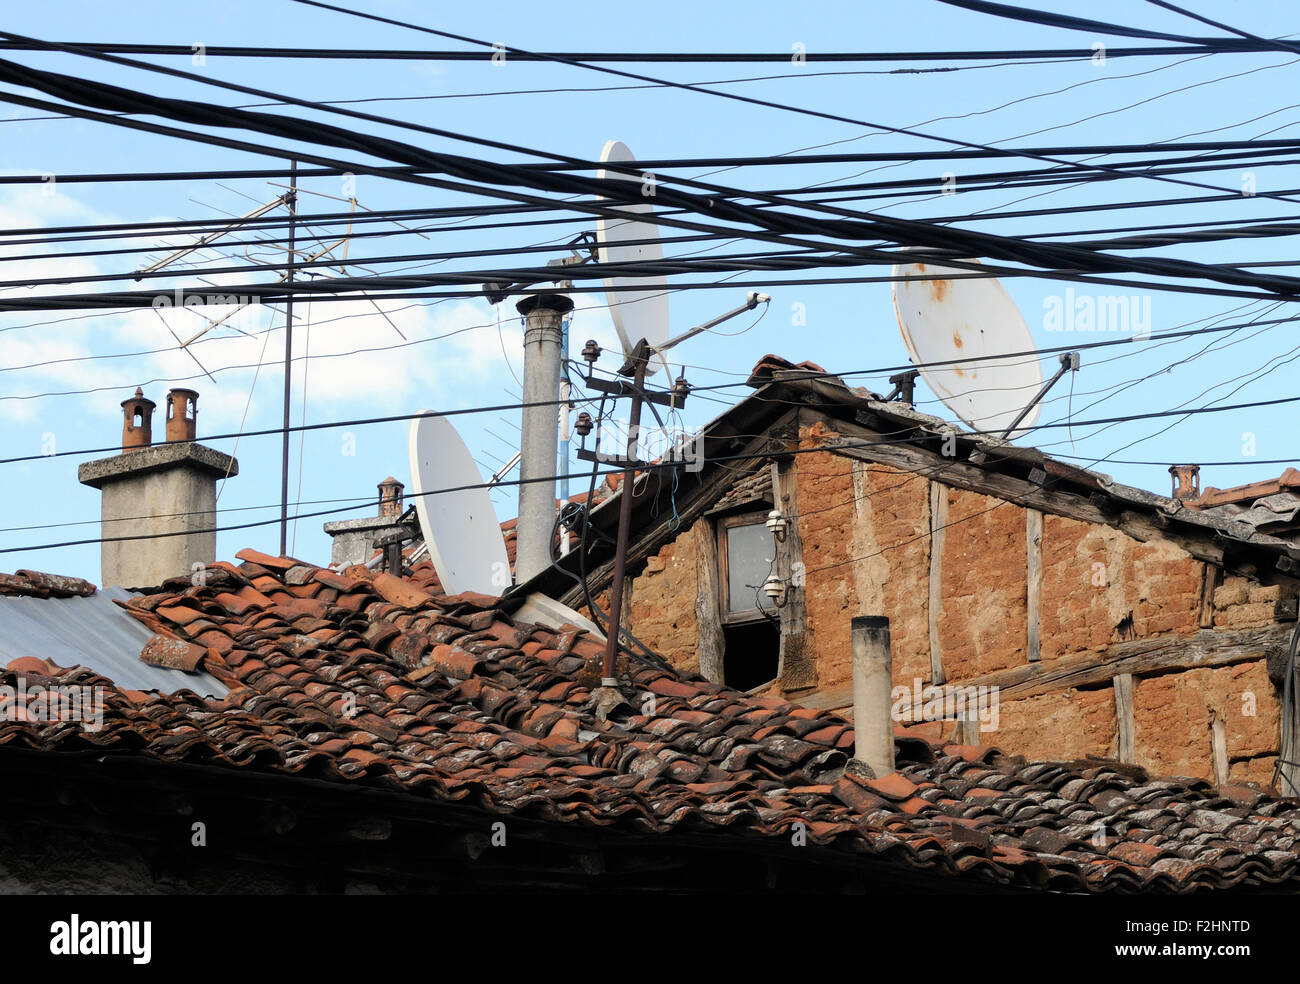 A Tangle Of Electricity And Communications Cables Television Stock Satellite Tv Wiring Aerials Dishes Over Ancient Tiled Roofs In Prizren